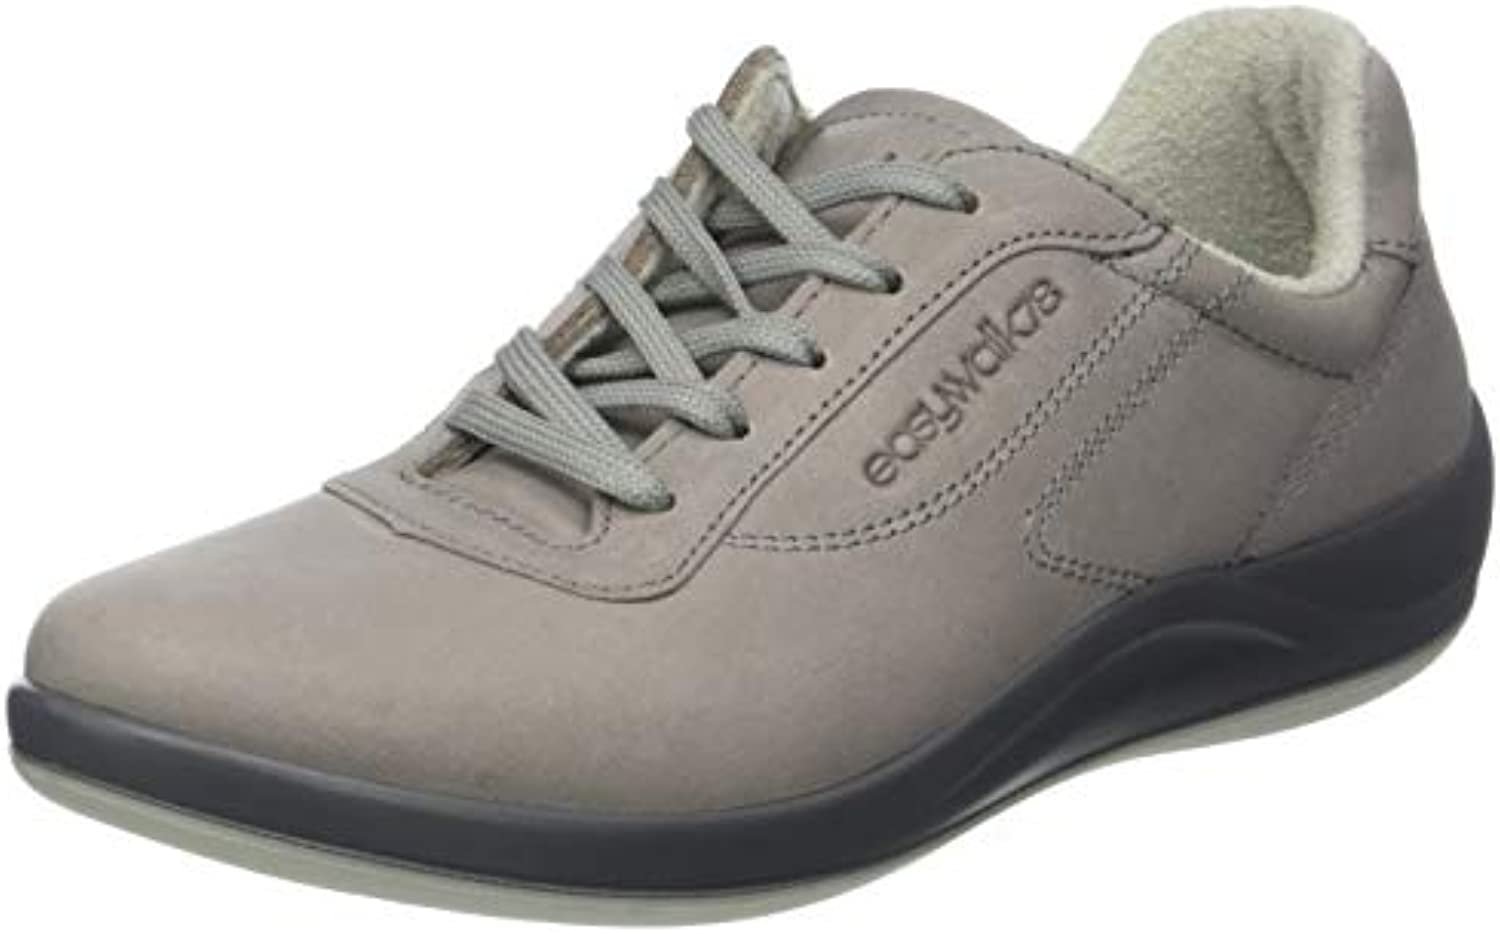 Monsieur / Dame TBS Anyway, Multisport Chaussures Multisport Anyway, Indoor FemmeB079TVRYZ7Parent TraiteHommes t fin magasin en ligne diverses sortes f89bf4